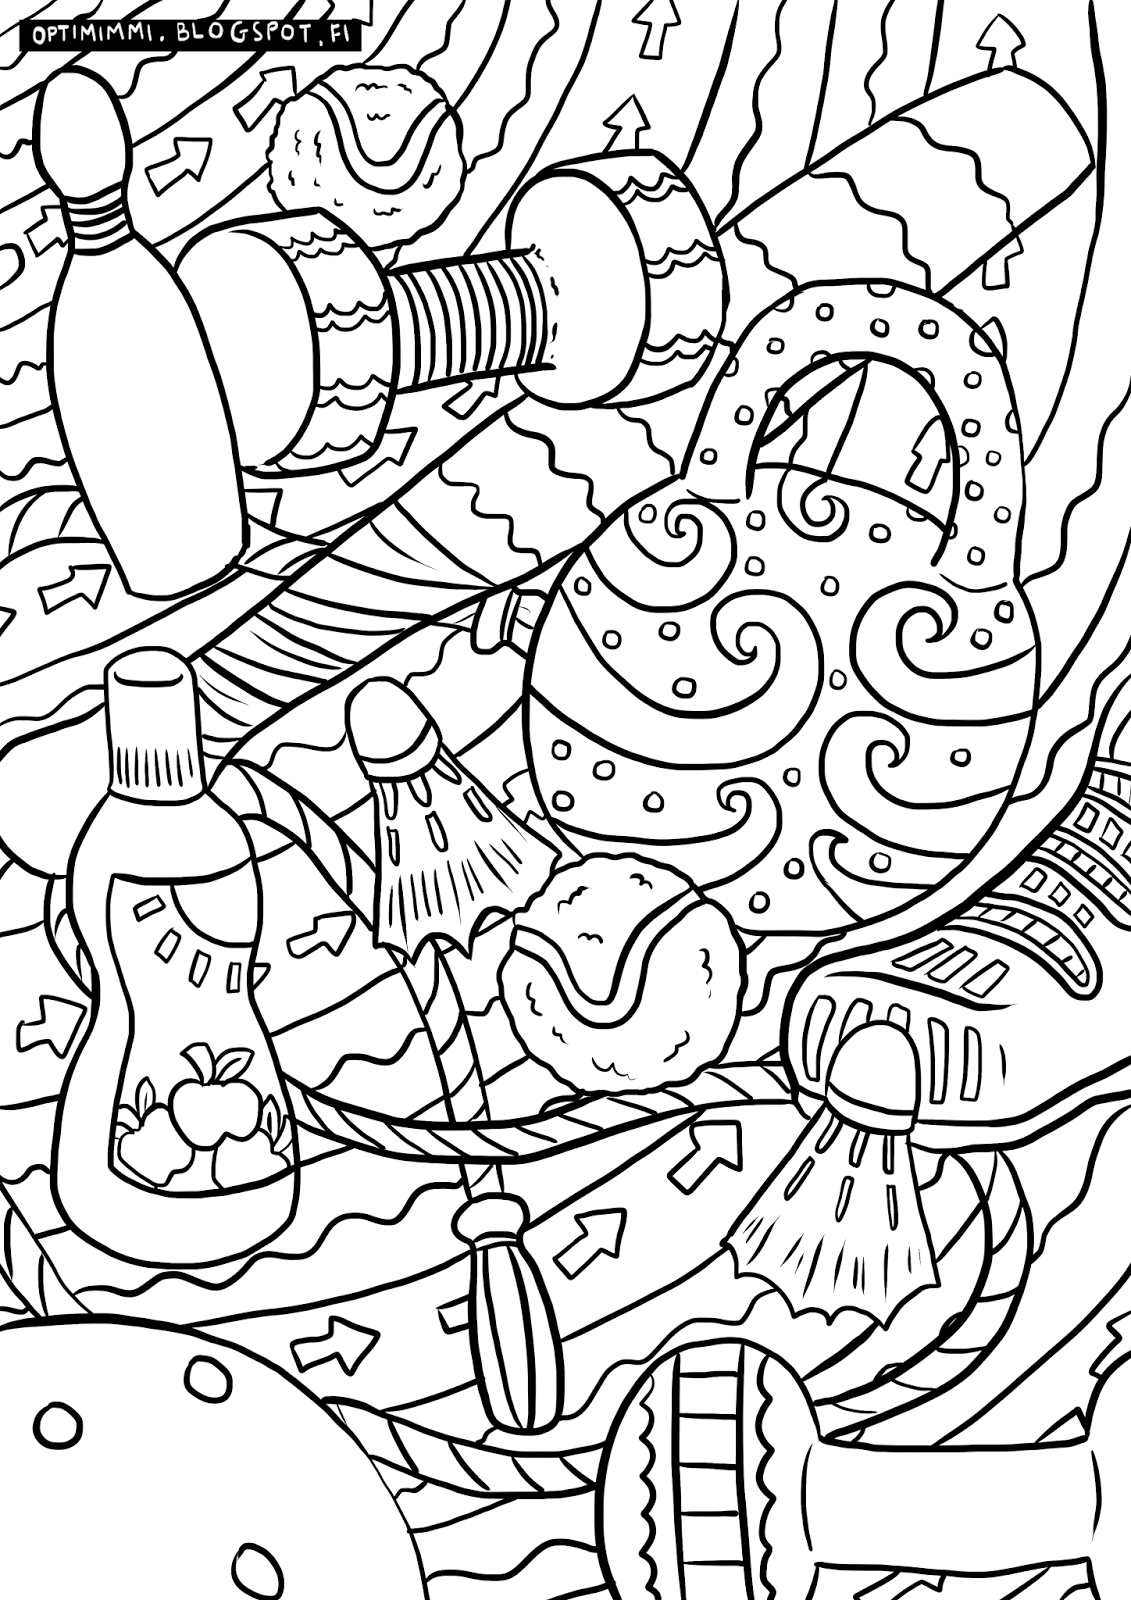 Coloring book varityskuvat - A Coloring Page About Sports V Rityskuva Urheilusta